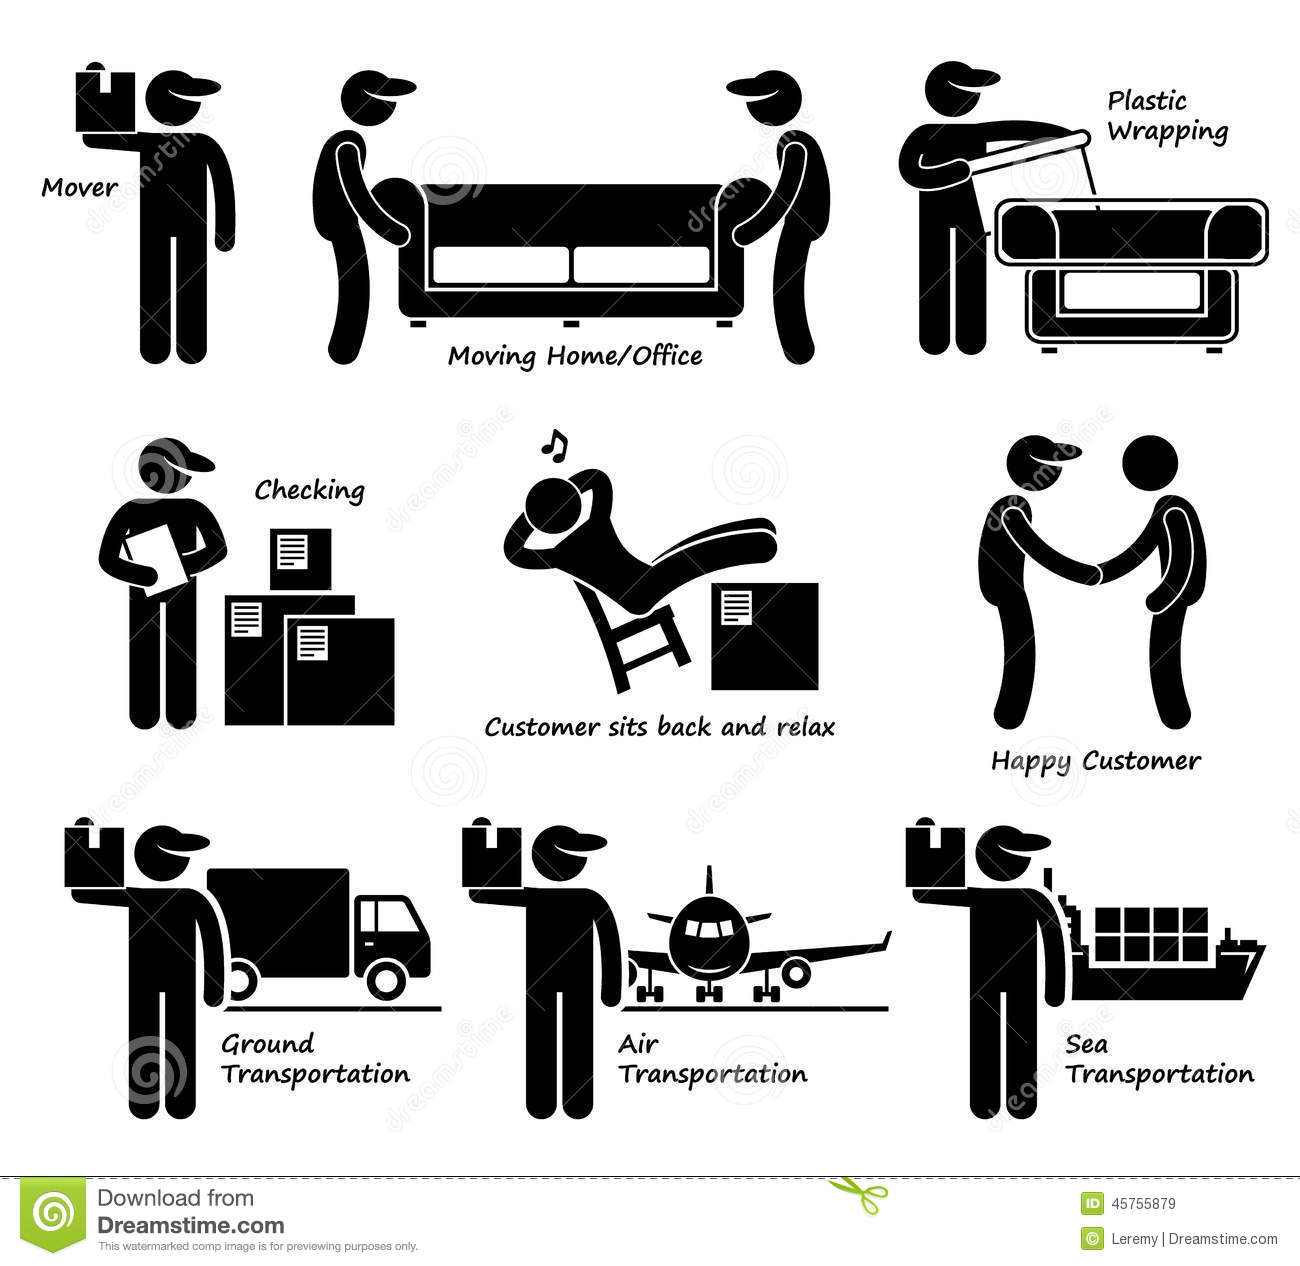 hight resolution of mover services moving house office goods logistic cliparts icons